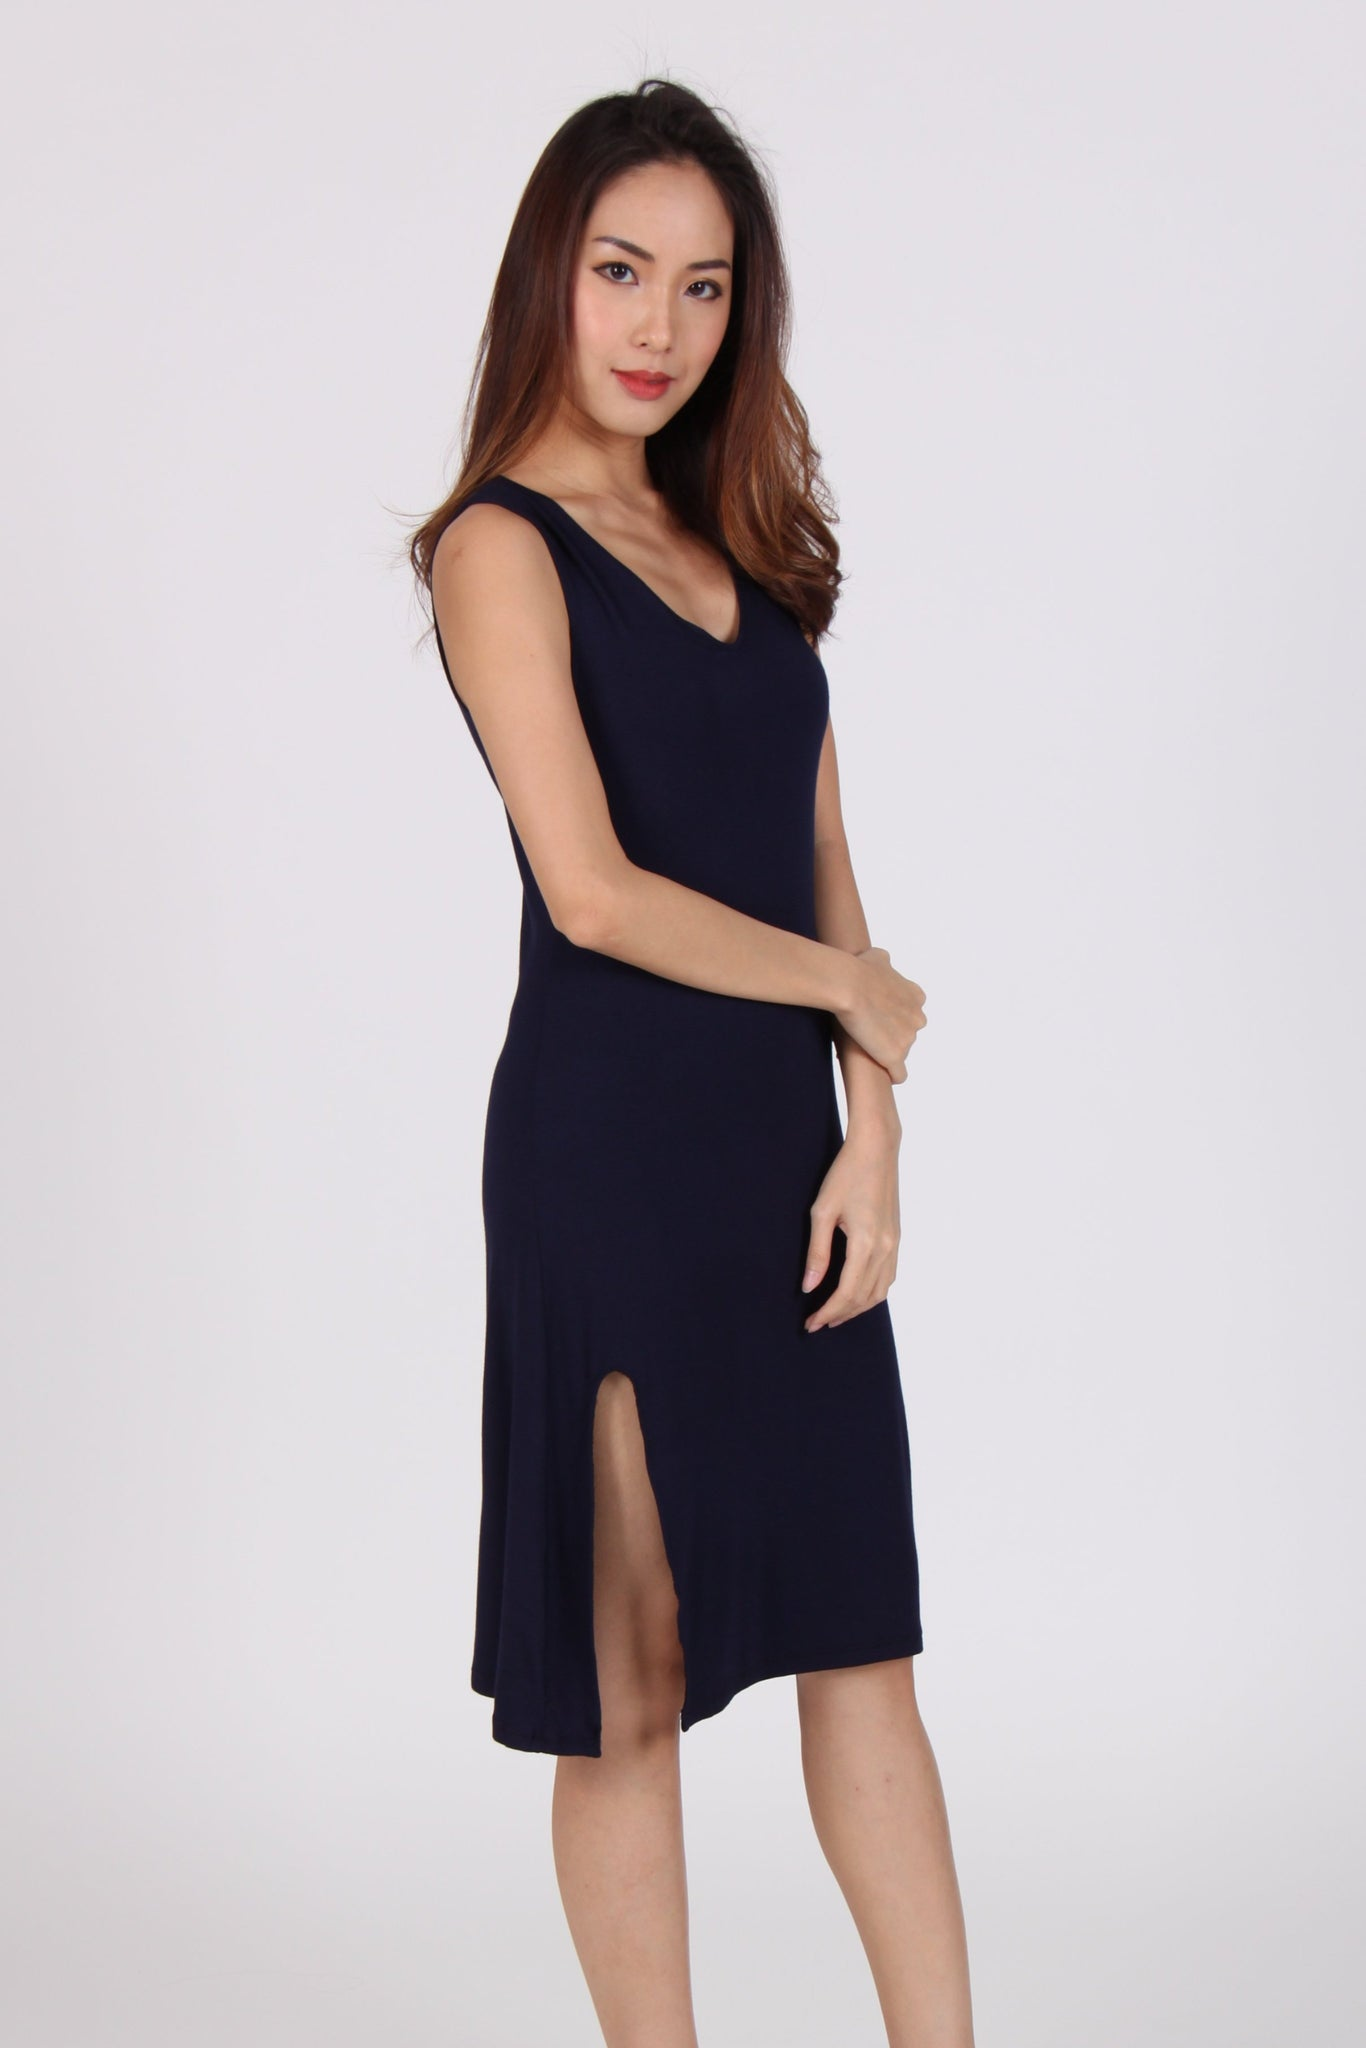 Basic V Neck Single Side Slit Cotton Dress in Navy Blue